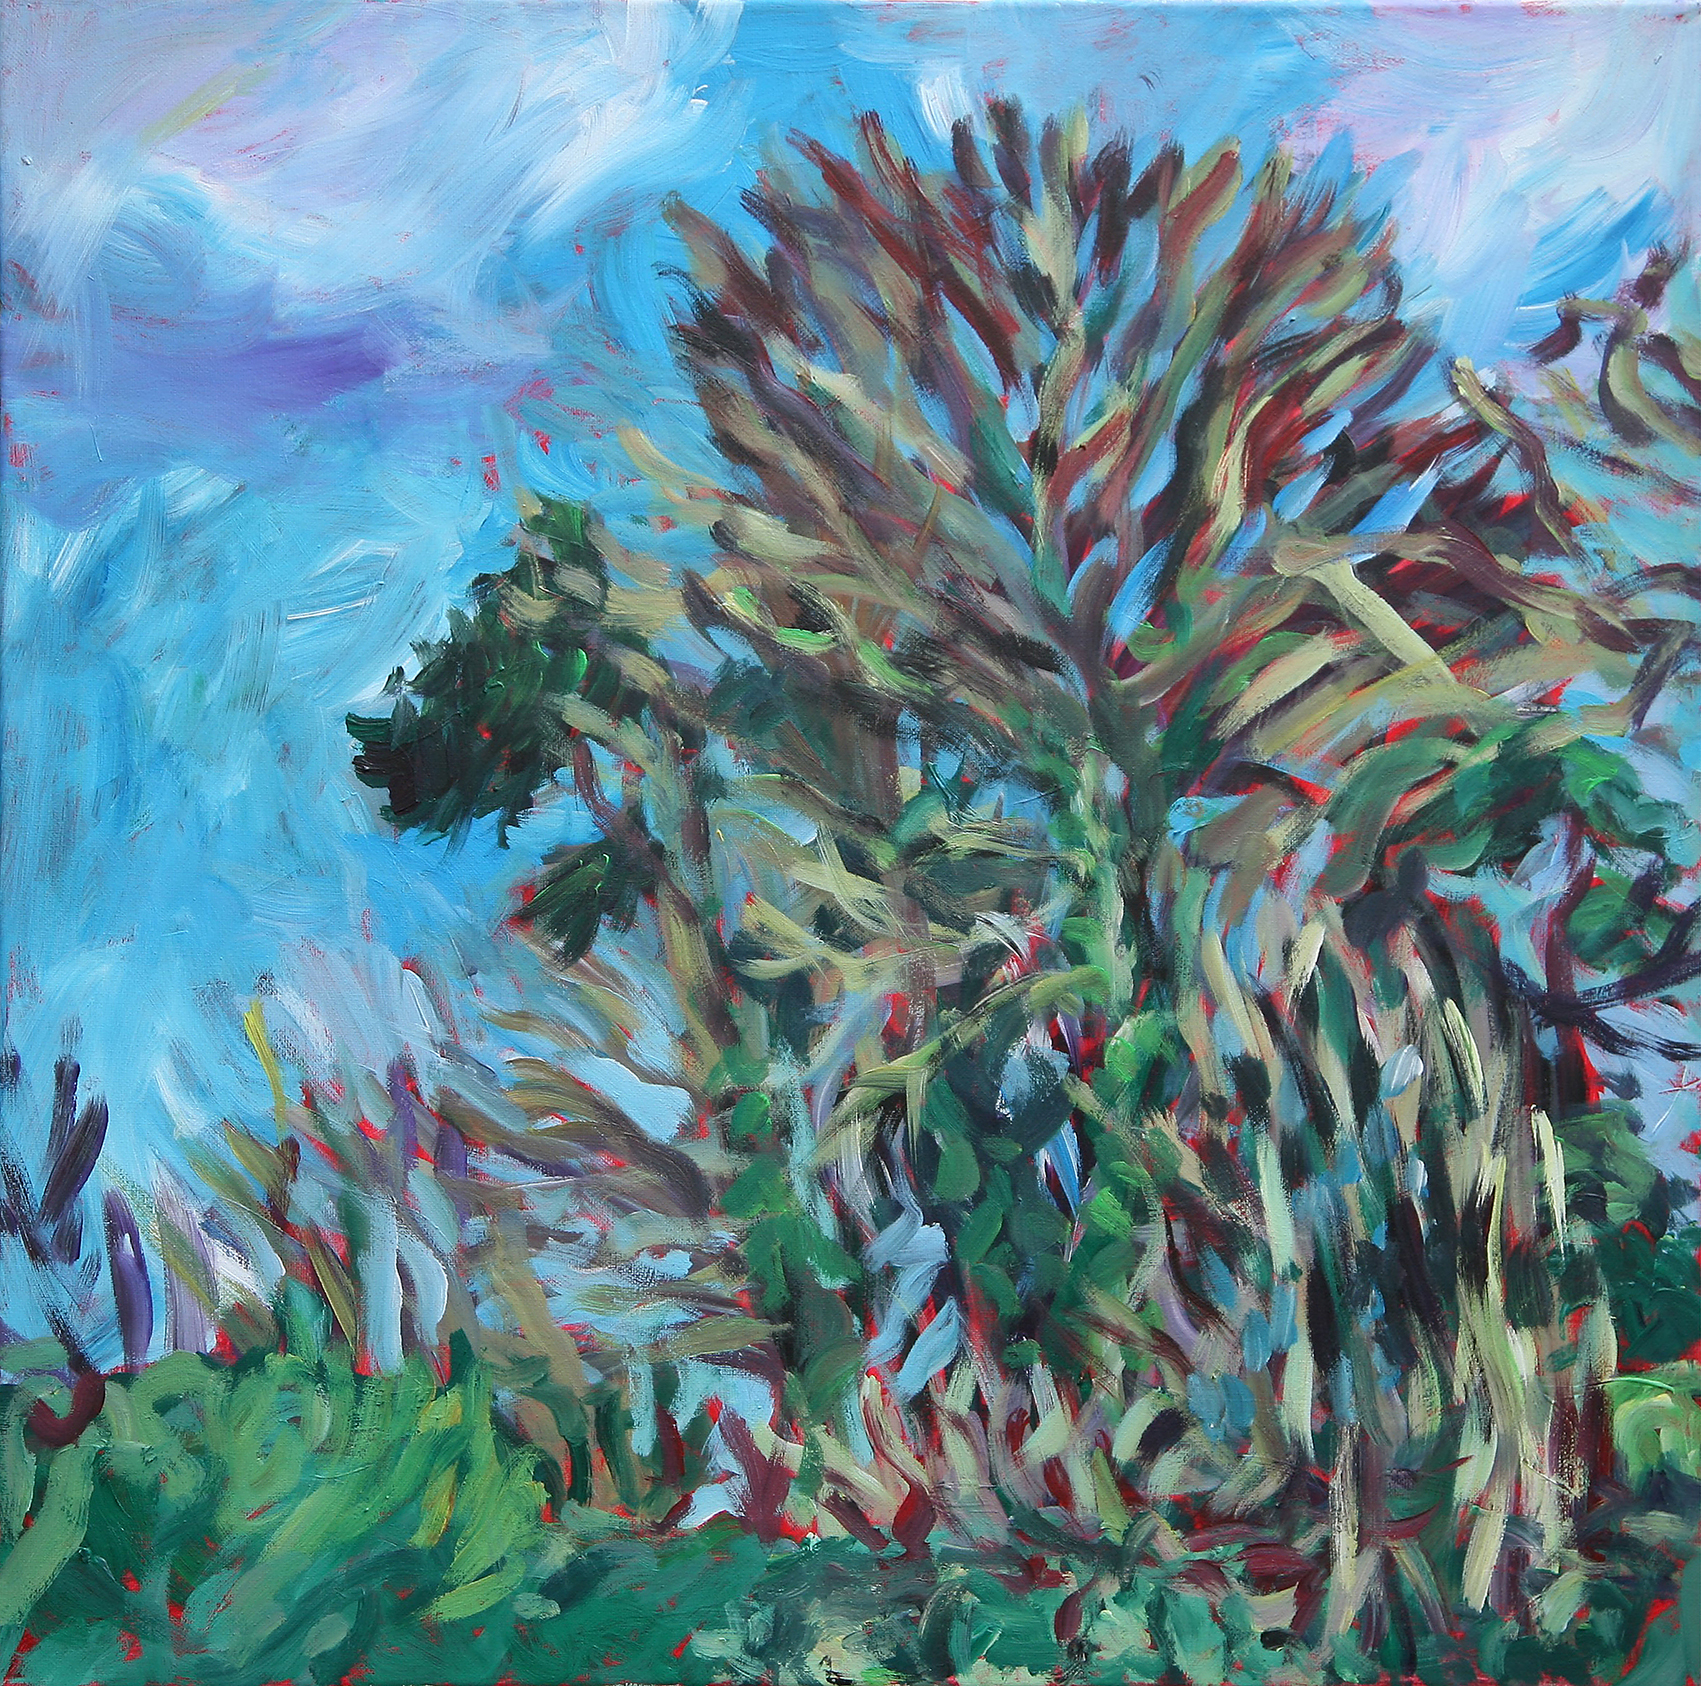 Garden Wall , Wiltshire    acrylic on canvas    60 by 60 by 1.75 cm    unframed    £700